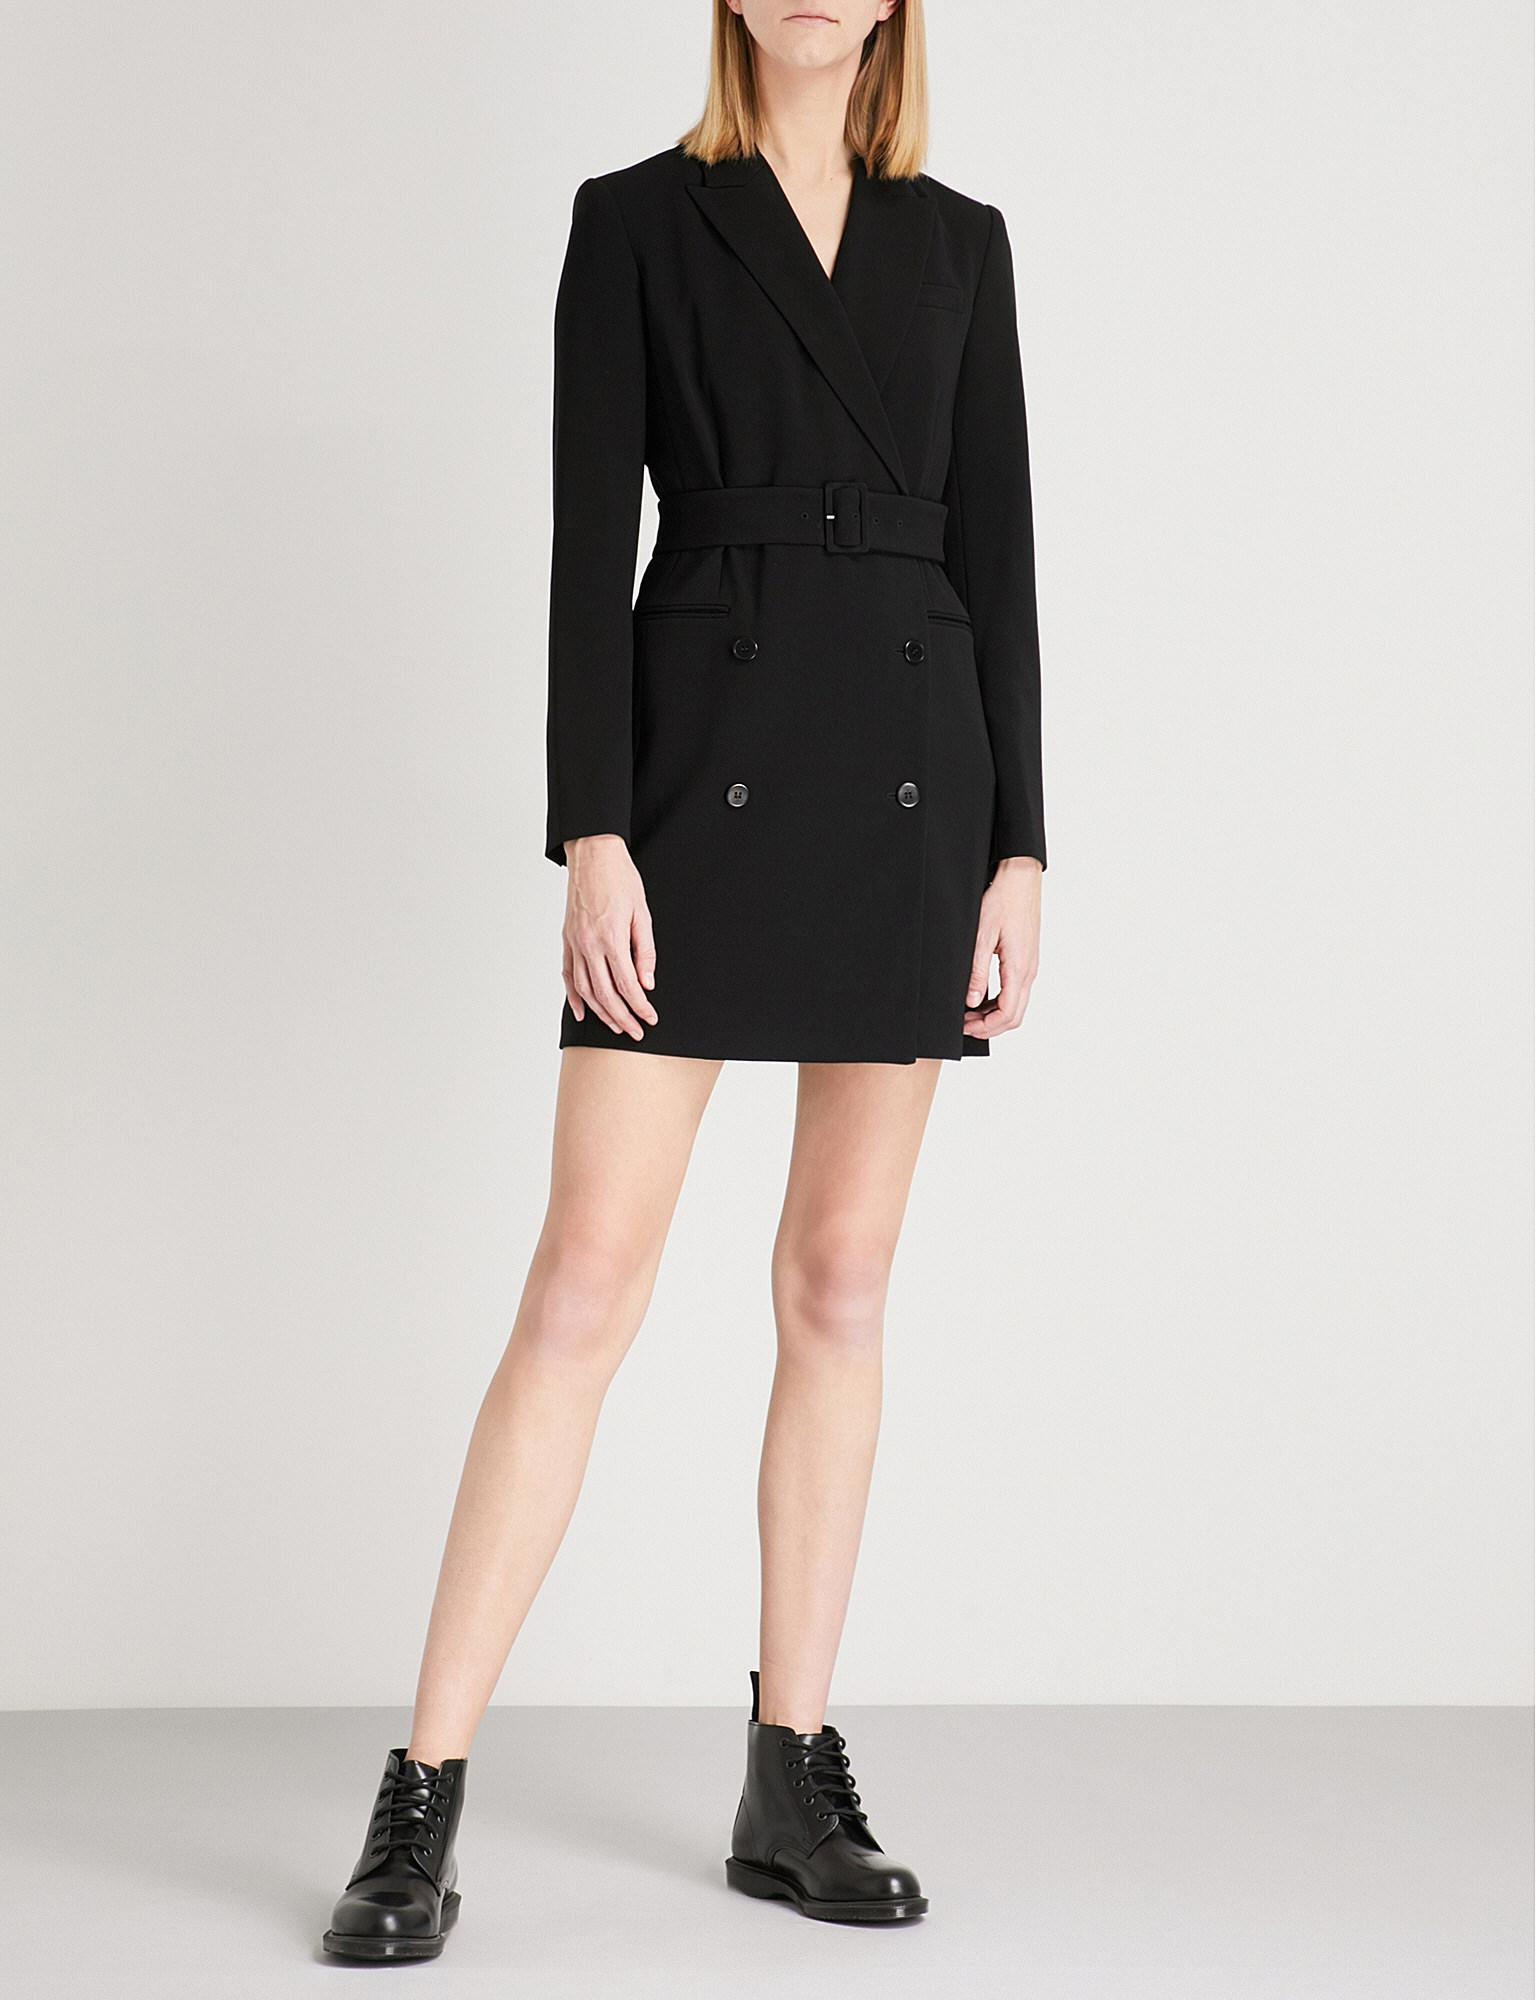 2632c3ff80fb0 Theory Double-breasted Crepe Blazer Dress in Black - Lyst